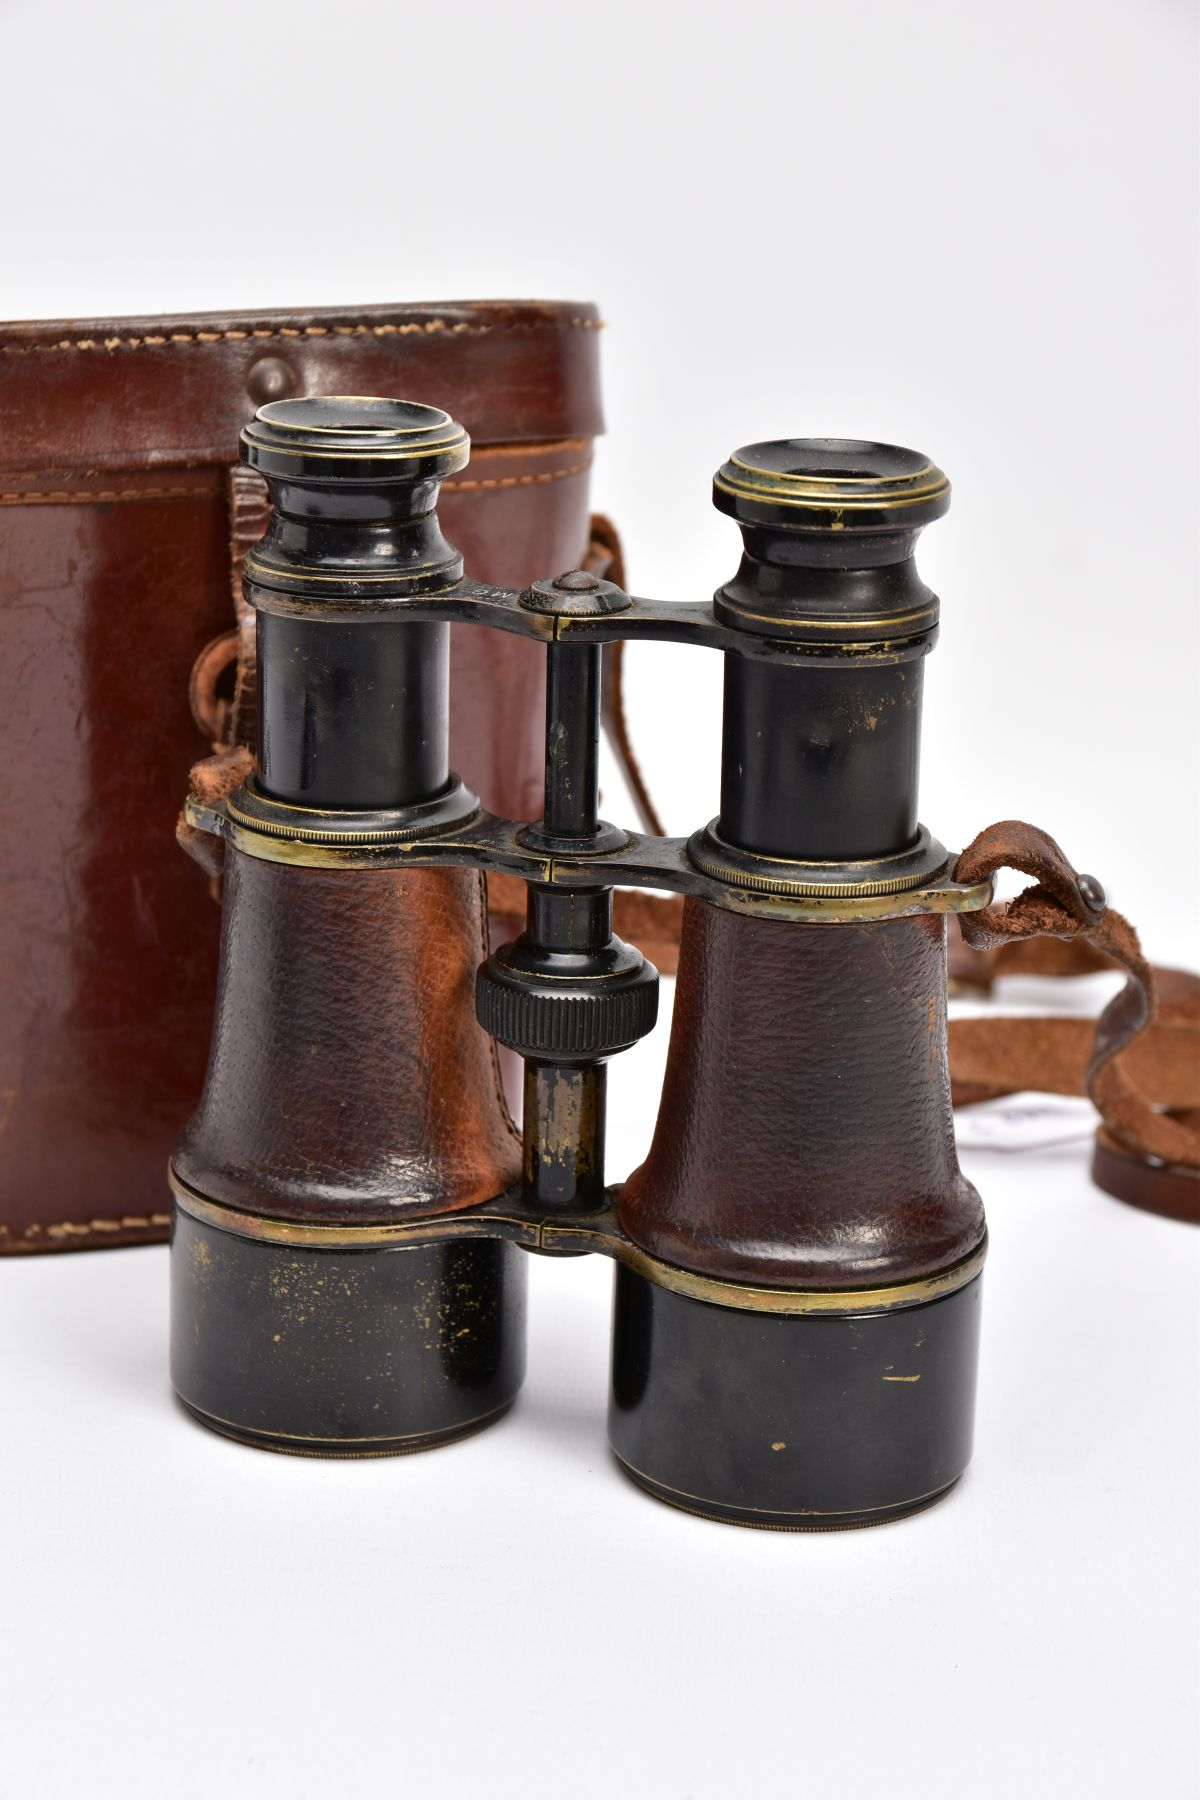 A BOXED PAIR OF FRENCH MADE MG (MINISTERE LA GUERE) WWI BINOCULARS, which are marked Mk V SPL & - Image 4 of 7